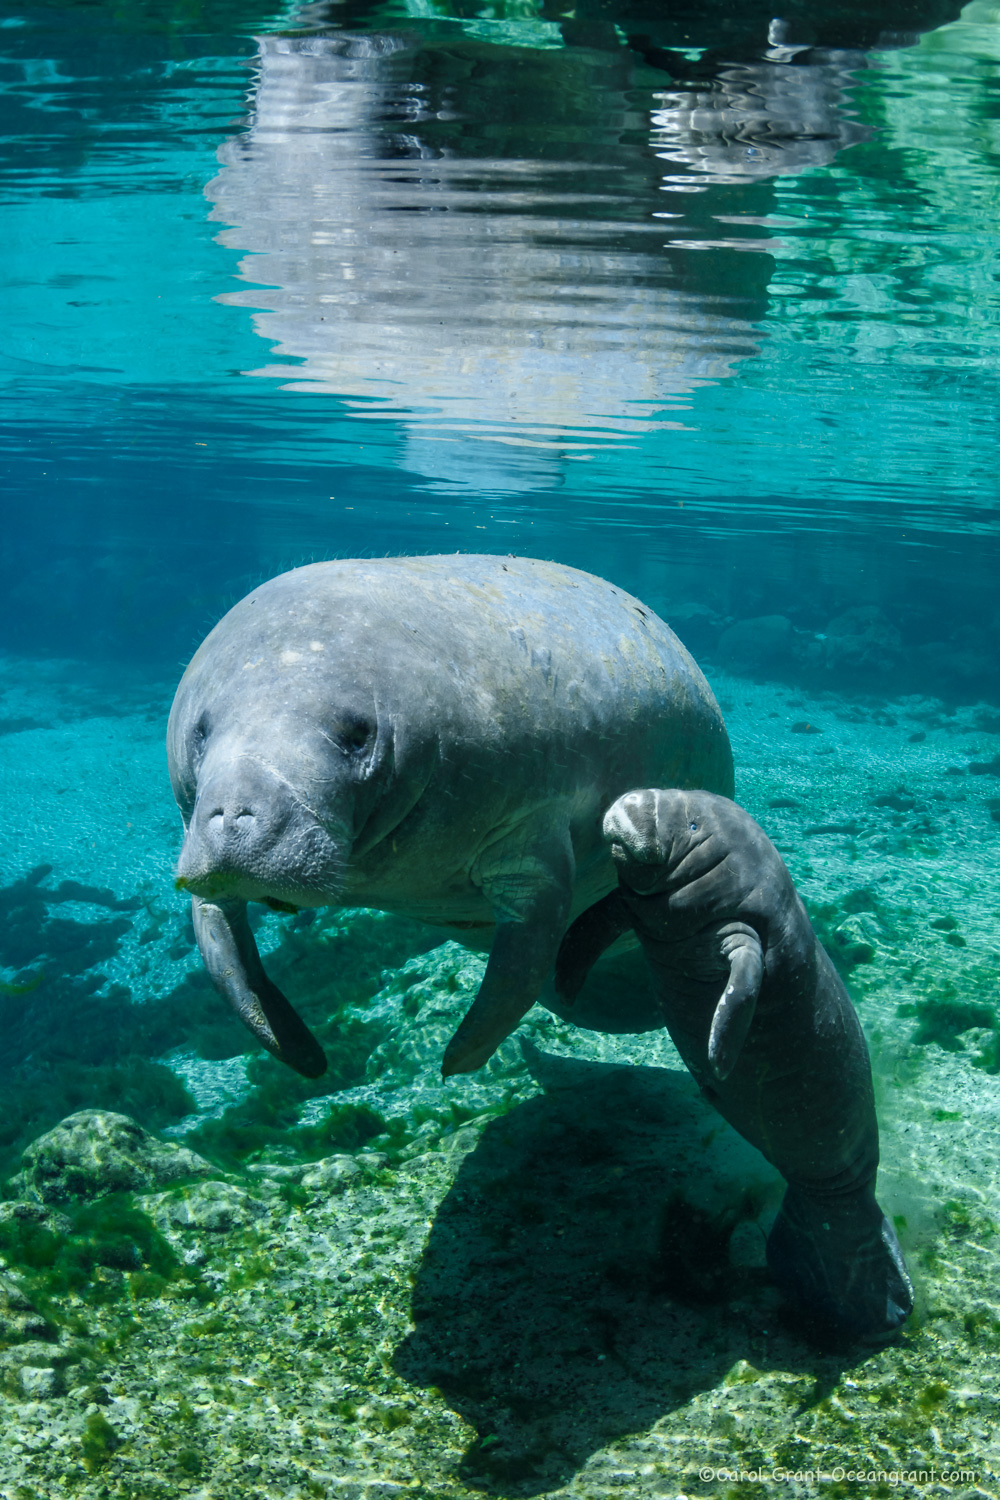 baby manatee with mother,©CGrant-oceangrant.com